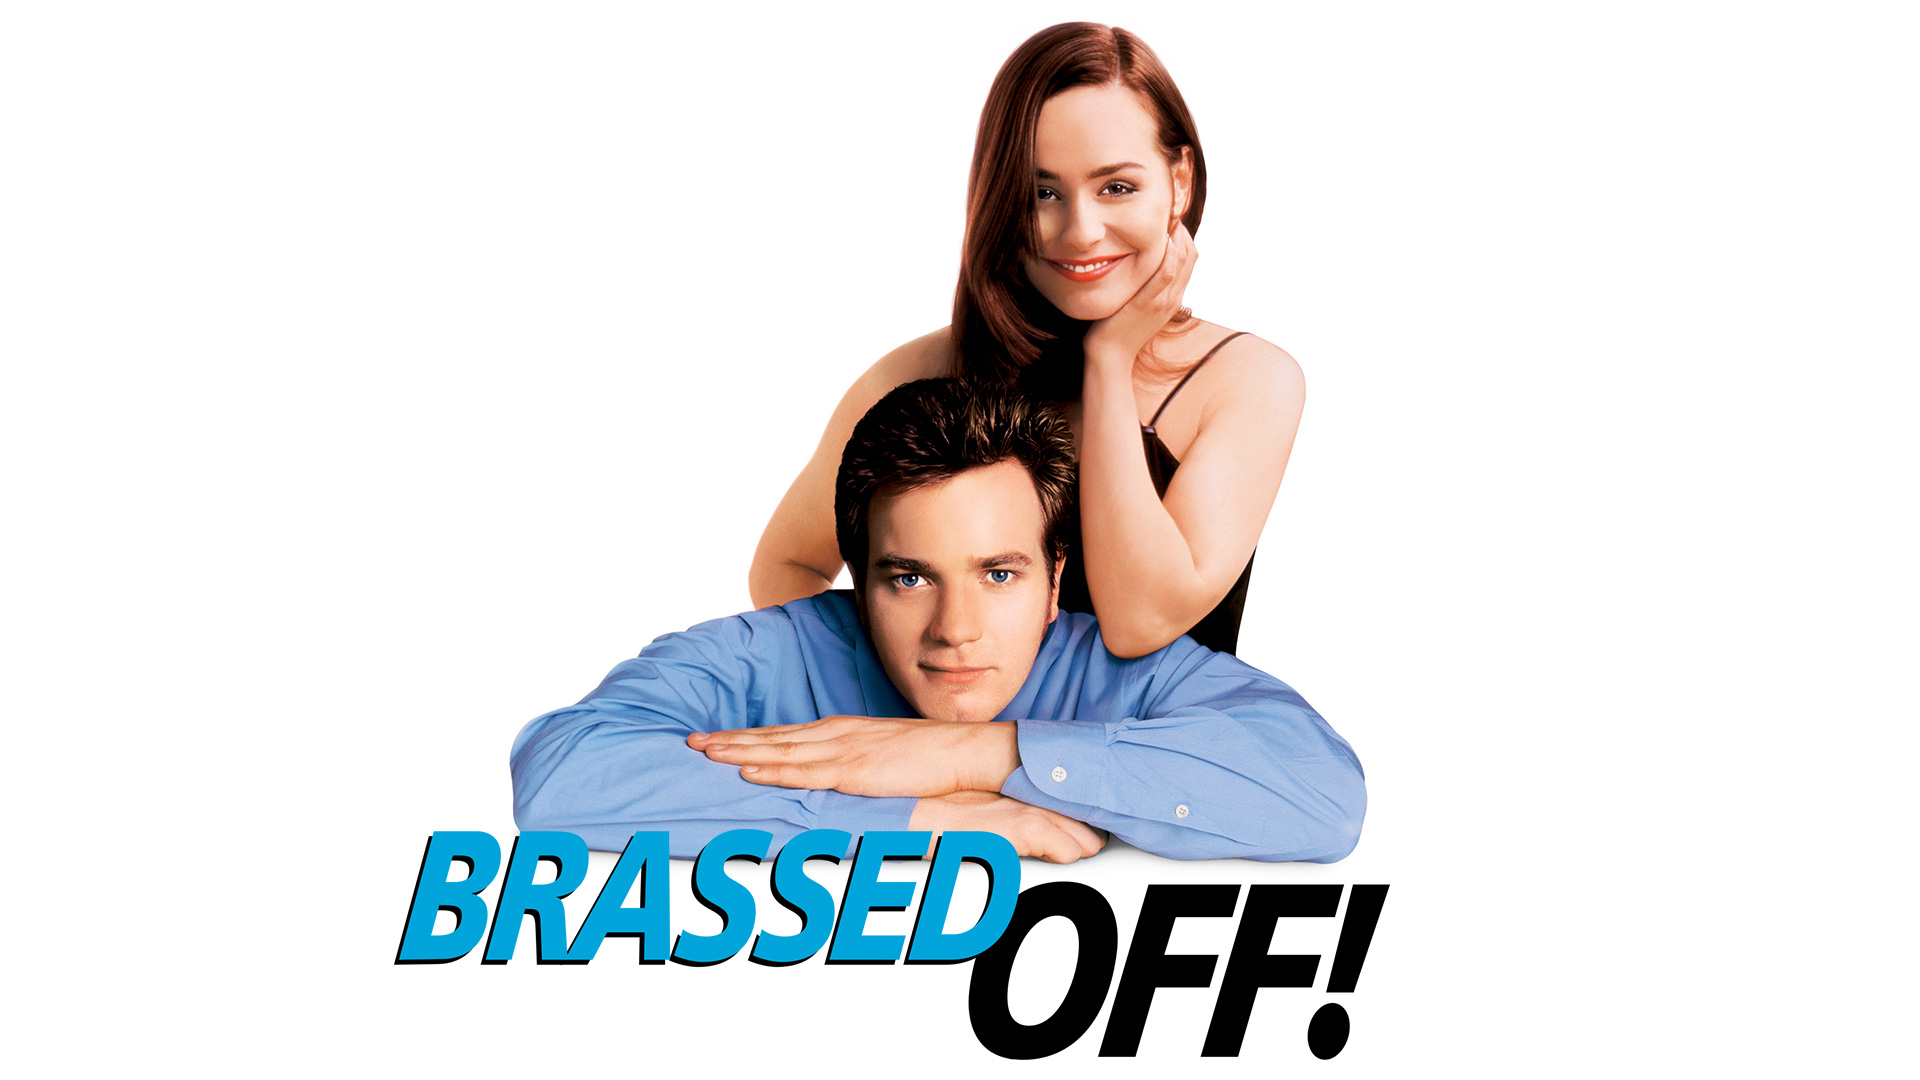 Brassed Off - Official Trailer (HD)